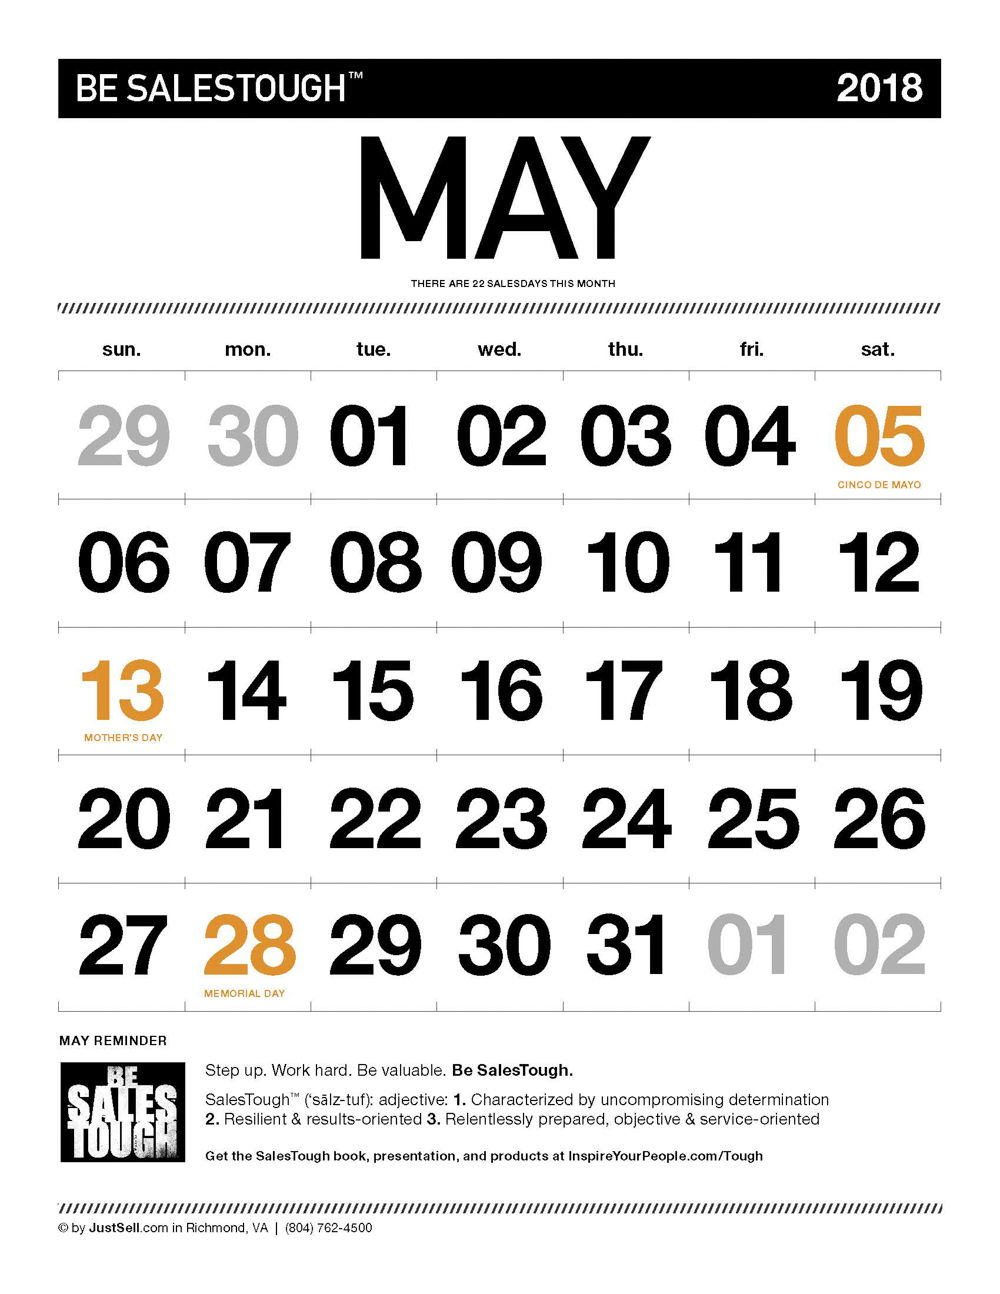 JustSell.com Monthly Calendar May 2018